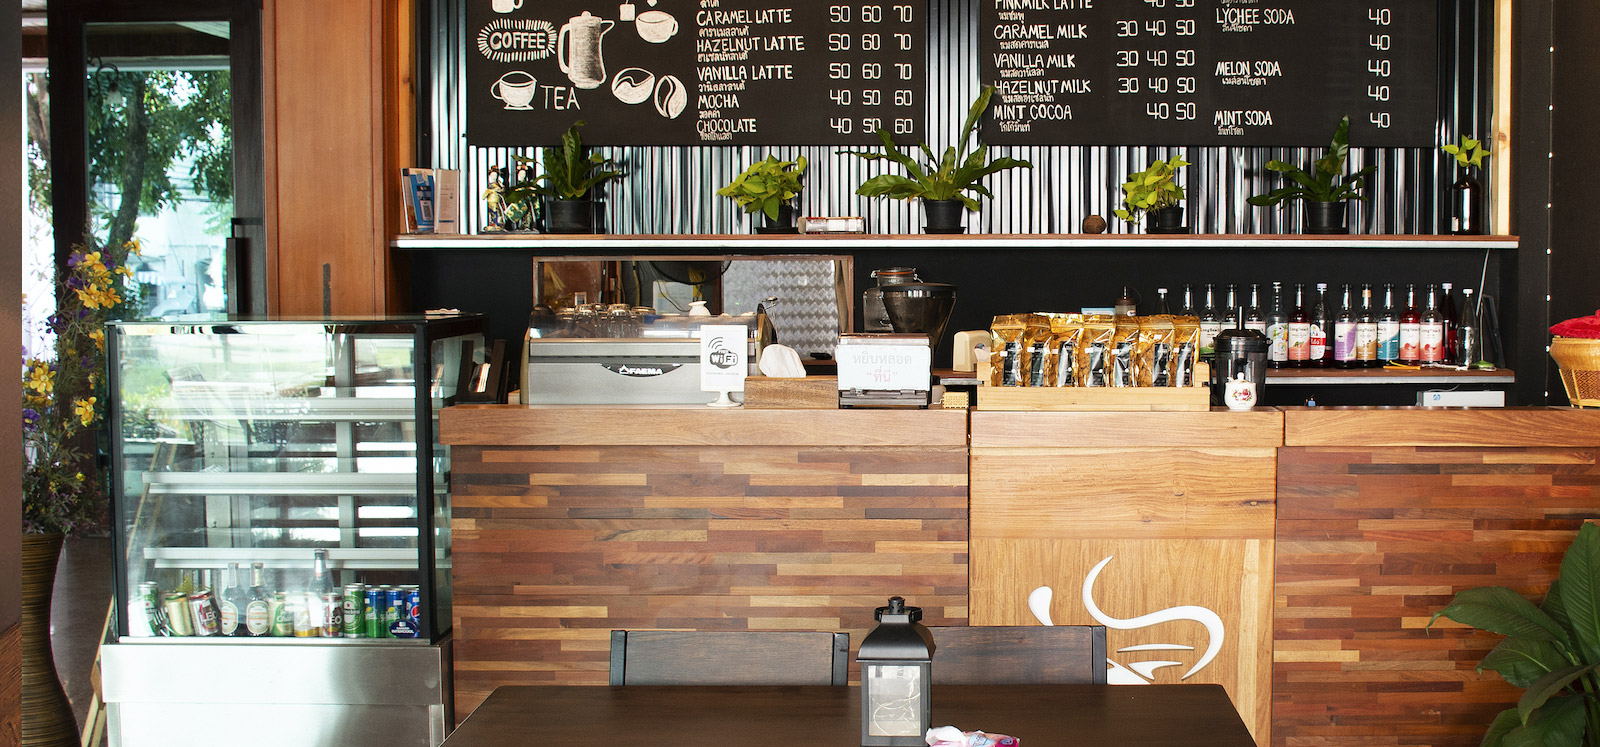 Inside a Cafe - Things to think about when it comes to Cafe Insurance